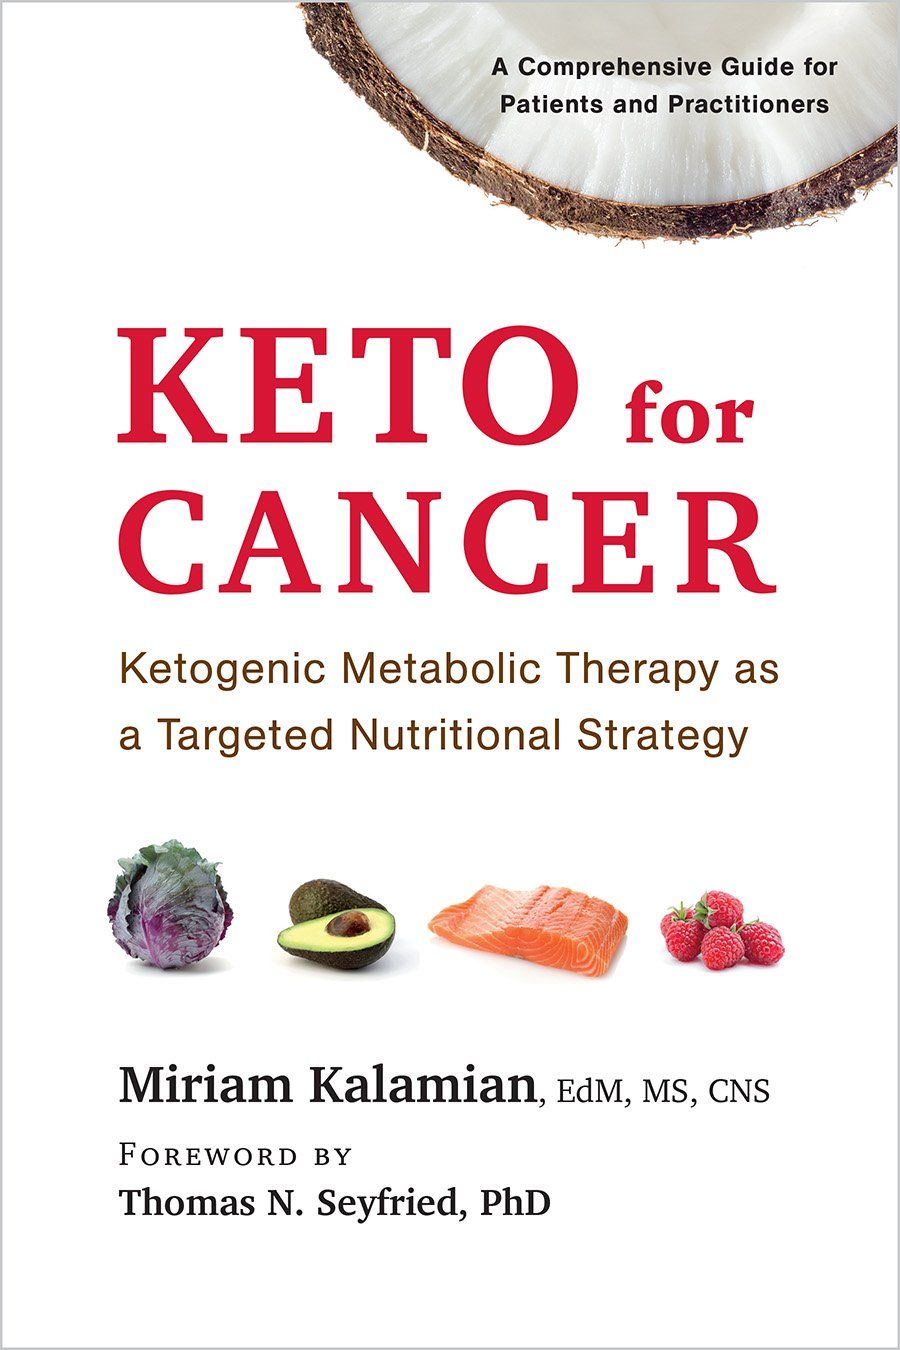 Hot Tips: Keto Diet Calculator Keto for Cancer by Miriam Kalamian at Chelsea Green Publishing